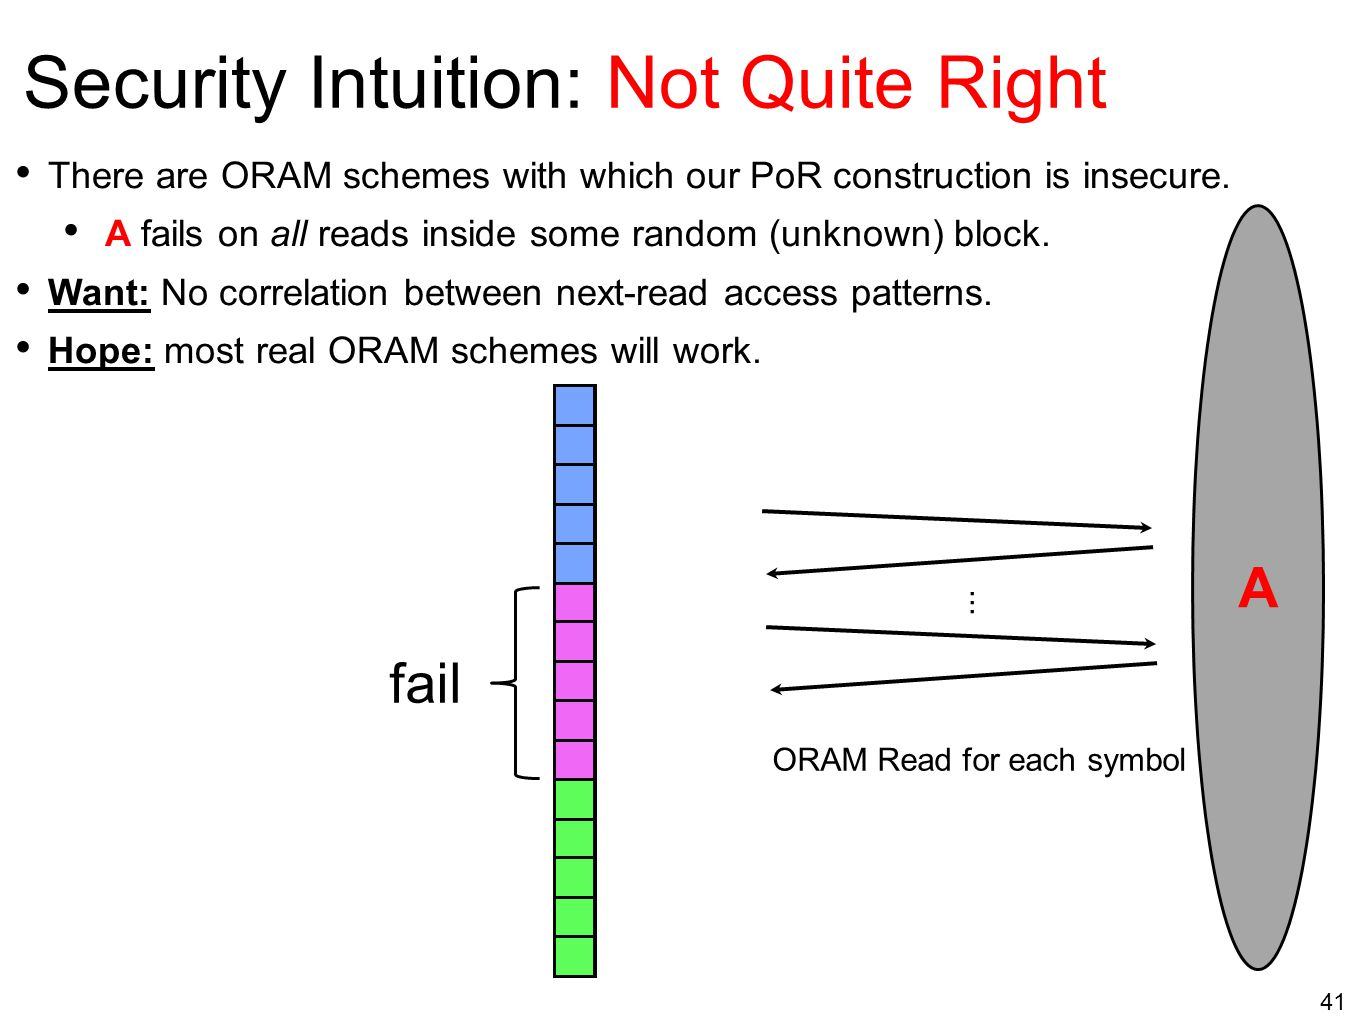 Security Intuition: Not Quite Right